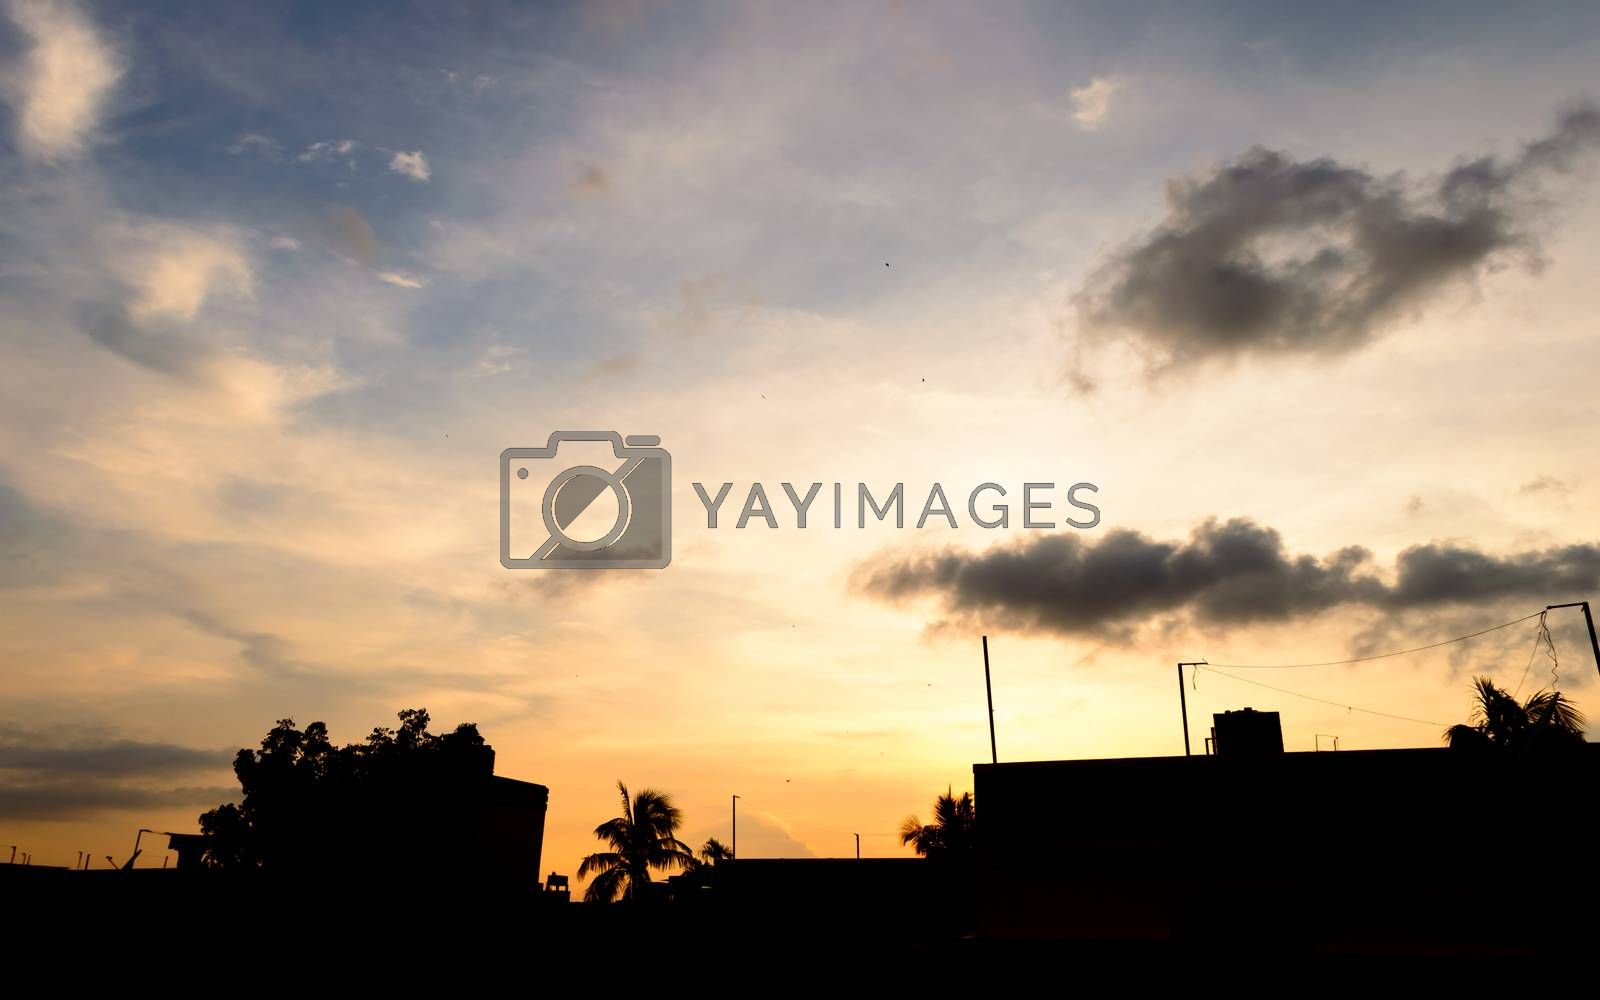 Kolkata city skyline silhouette at sunset. Just before the the Sun goes down.